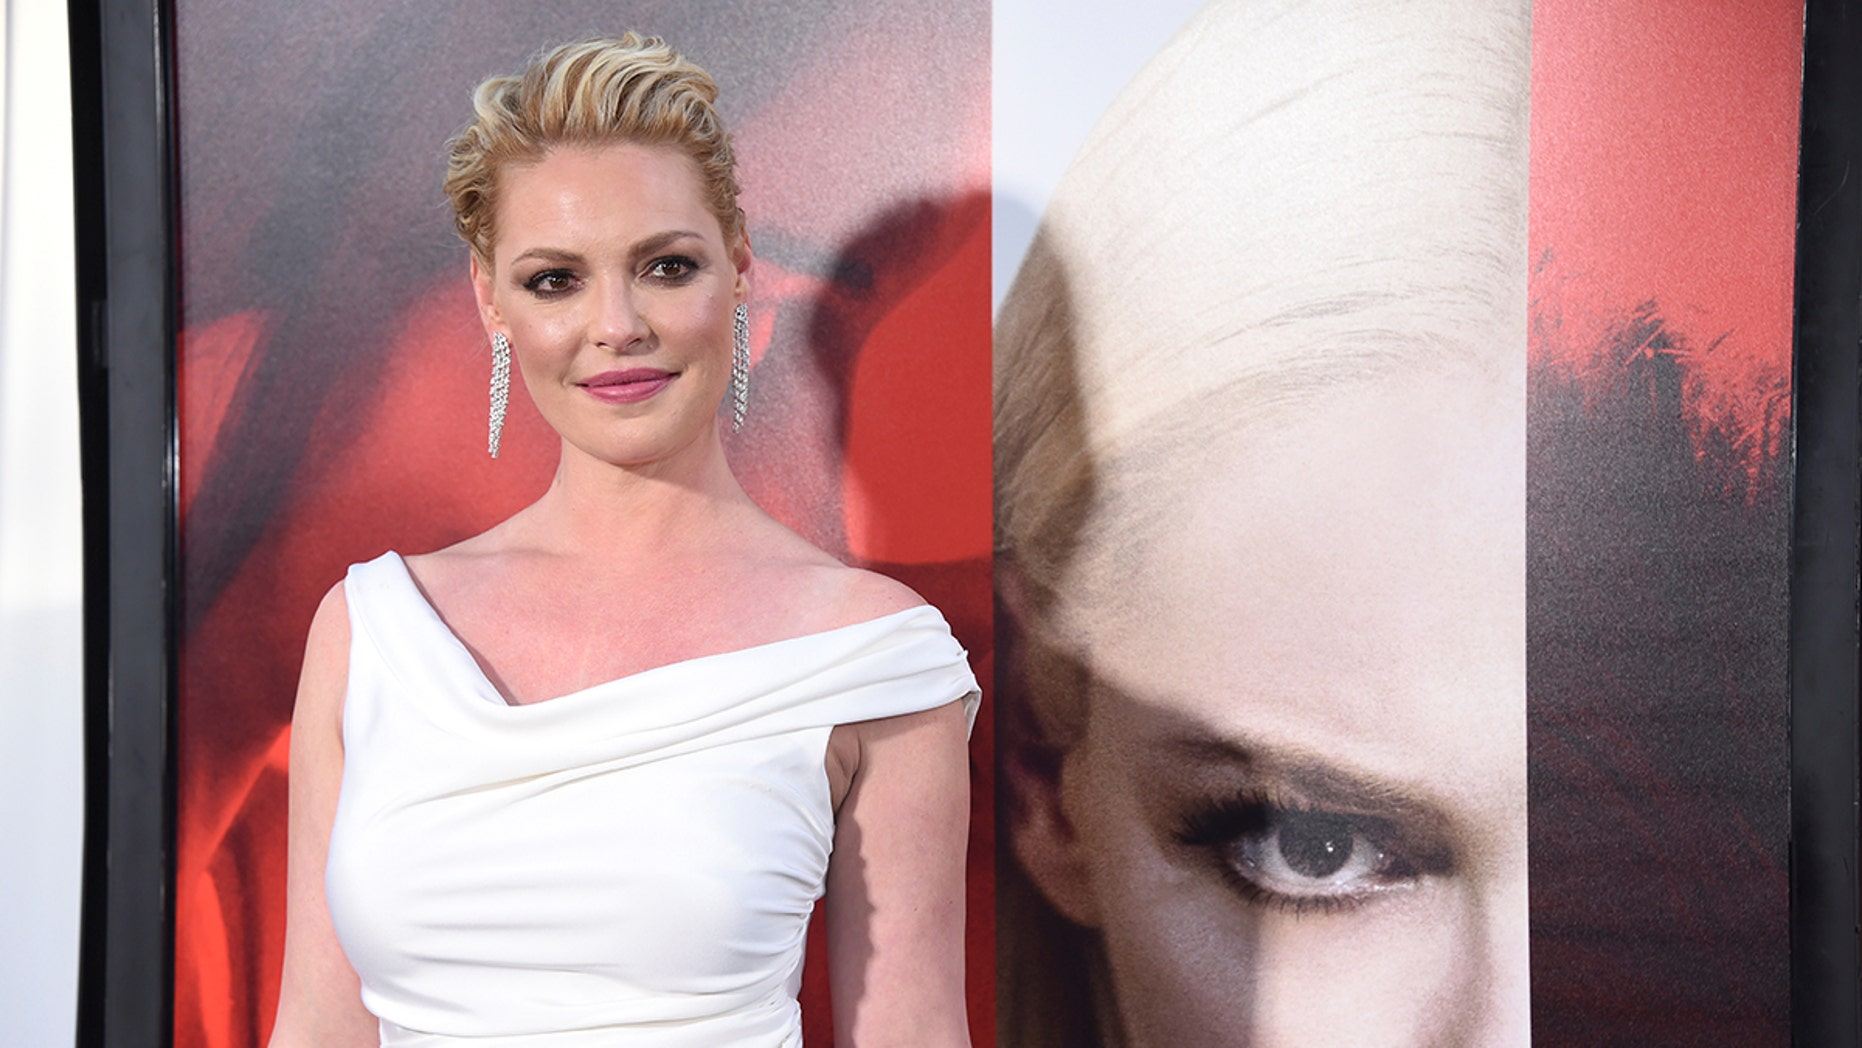 Katherine Heigl will join the cast of 'Suits' Season 8 as a series regular.